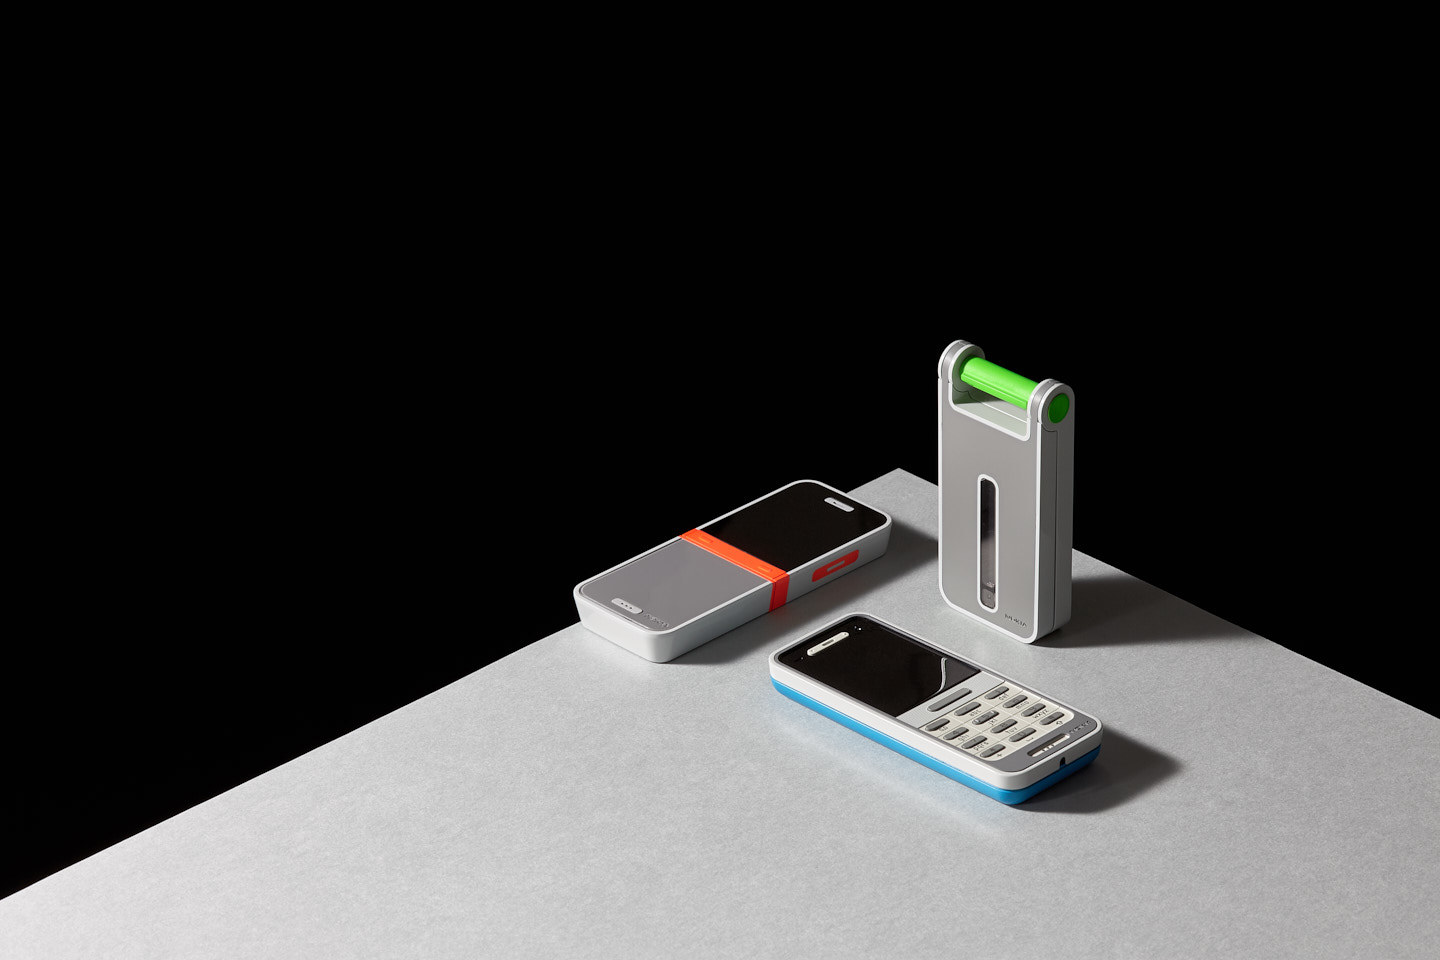 How To Open A Lock >> Mobile Phone Concepts - Office for Product Design